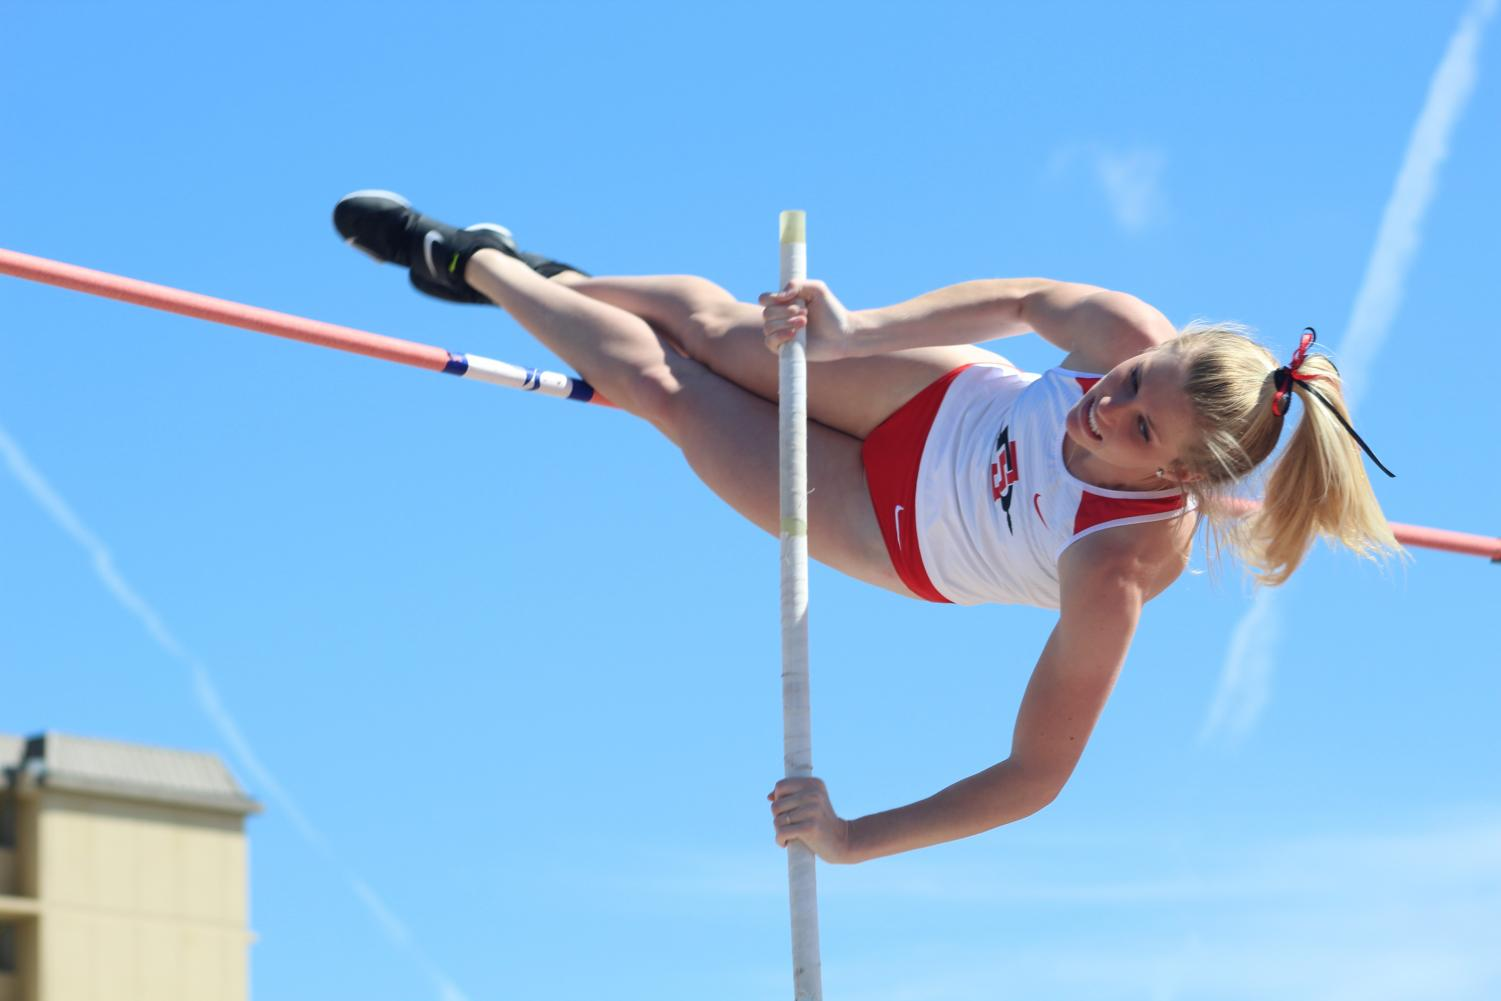 Sophomore pole vaulter Taylor Alexander competes during the Aztec Open & Invitational at the Aztrack Sports Deck on March 23.